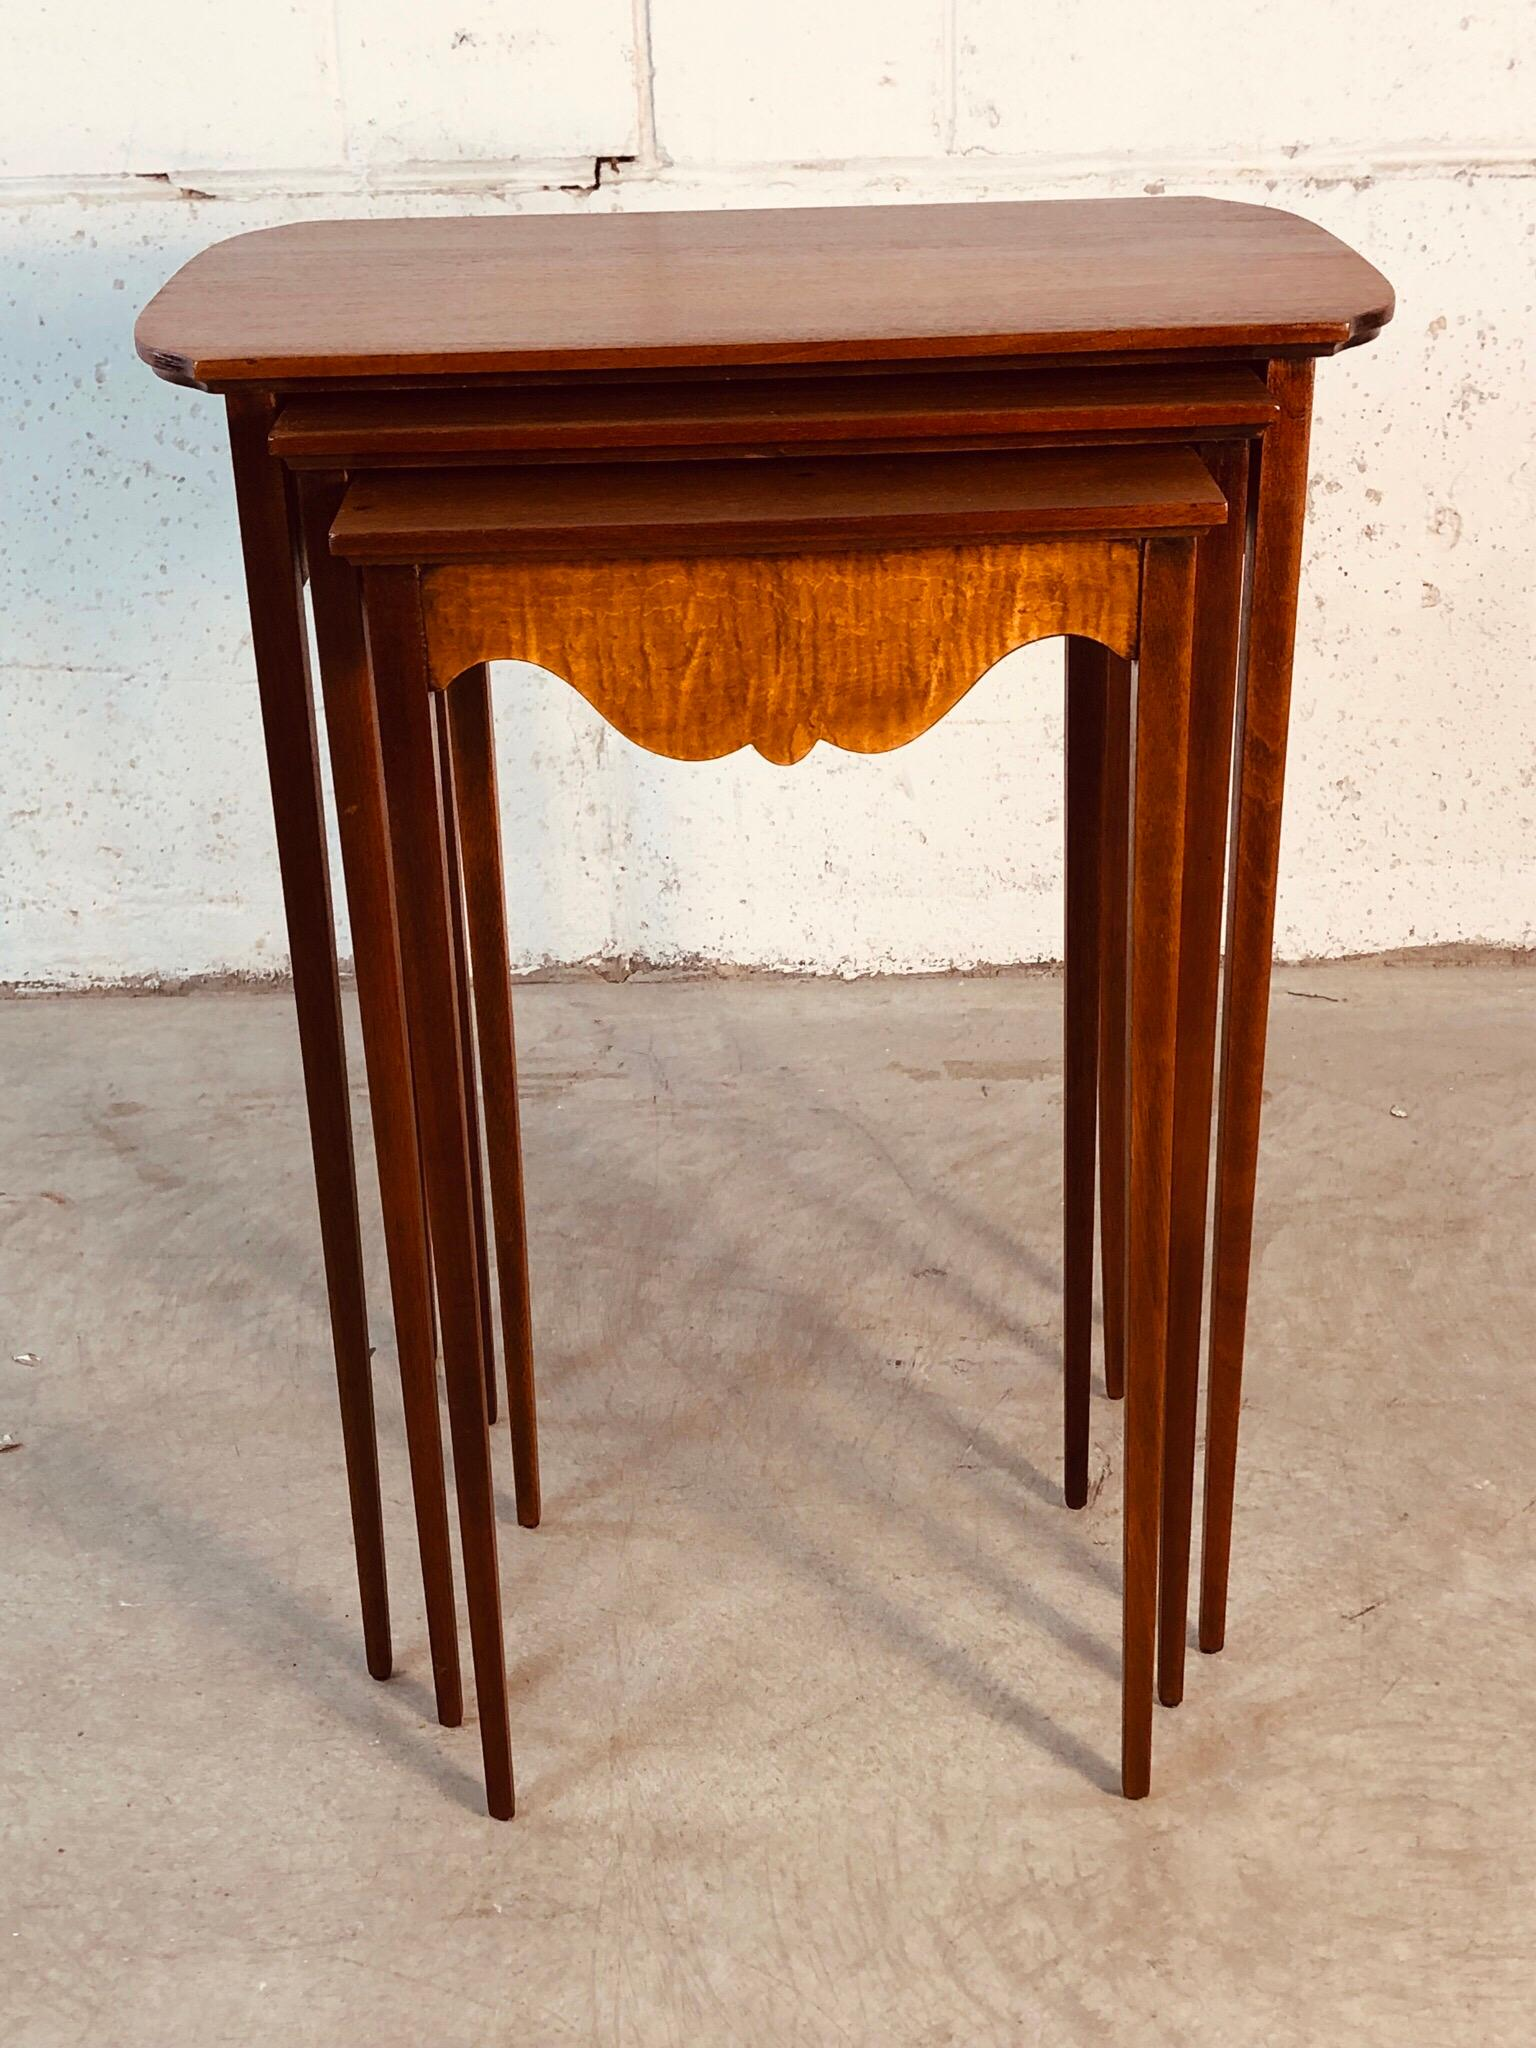 1950s Mahogany Nesting Tables With Tiger Maple Accent Set Of 3 For Sale At 1stdibs